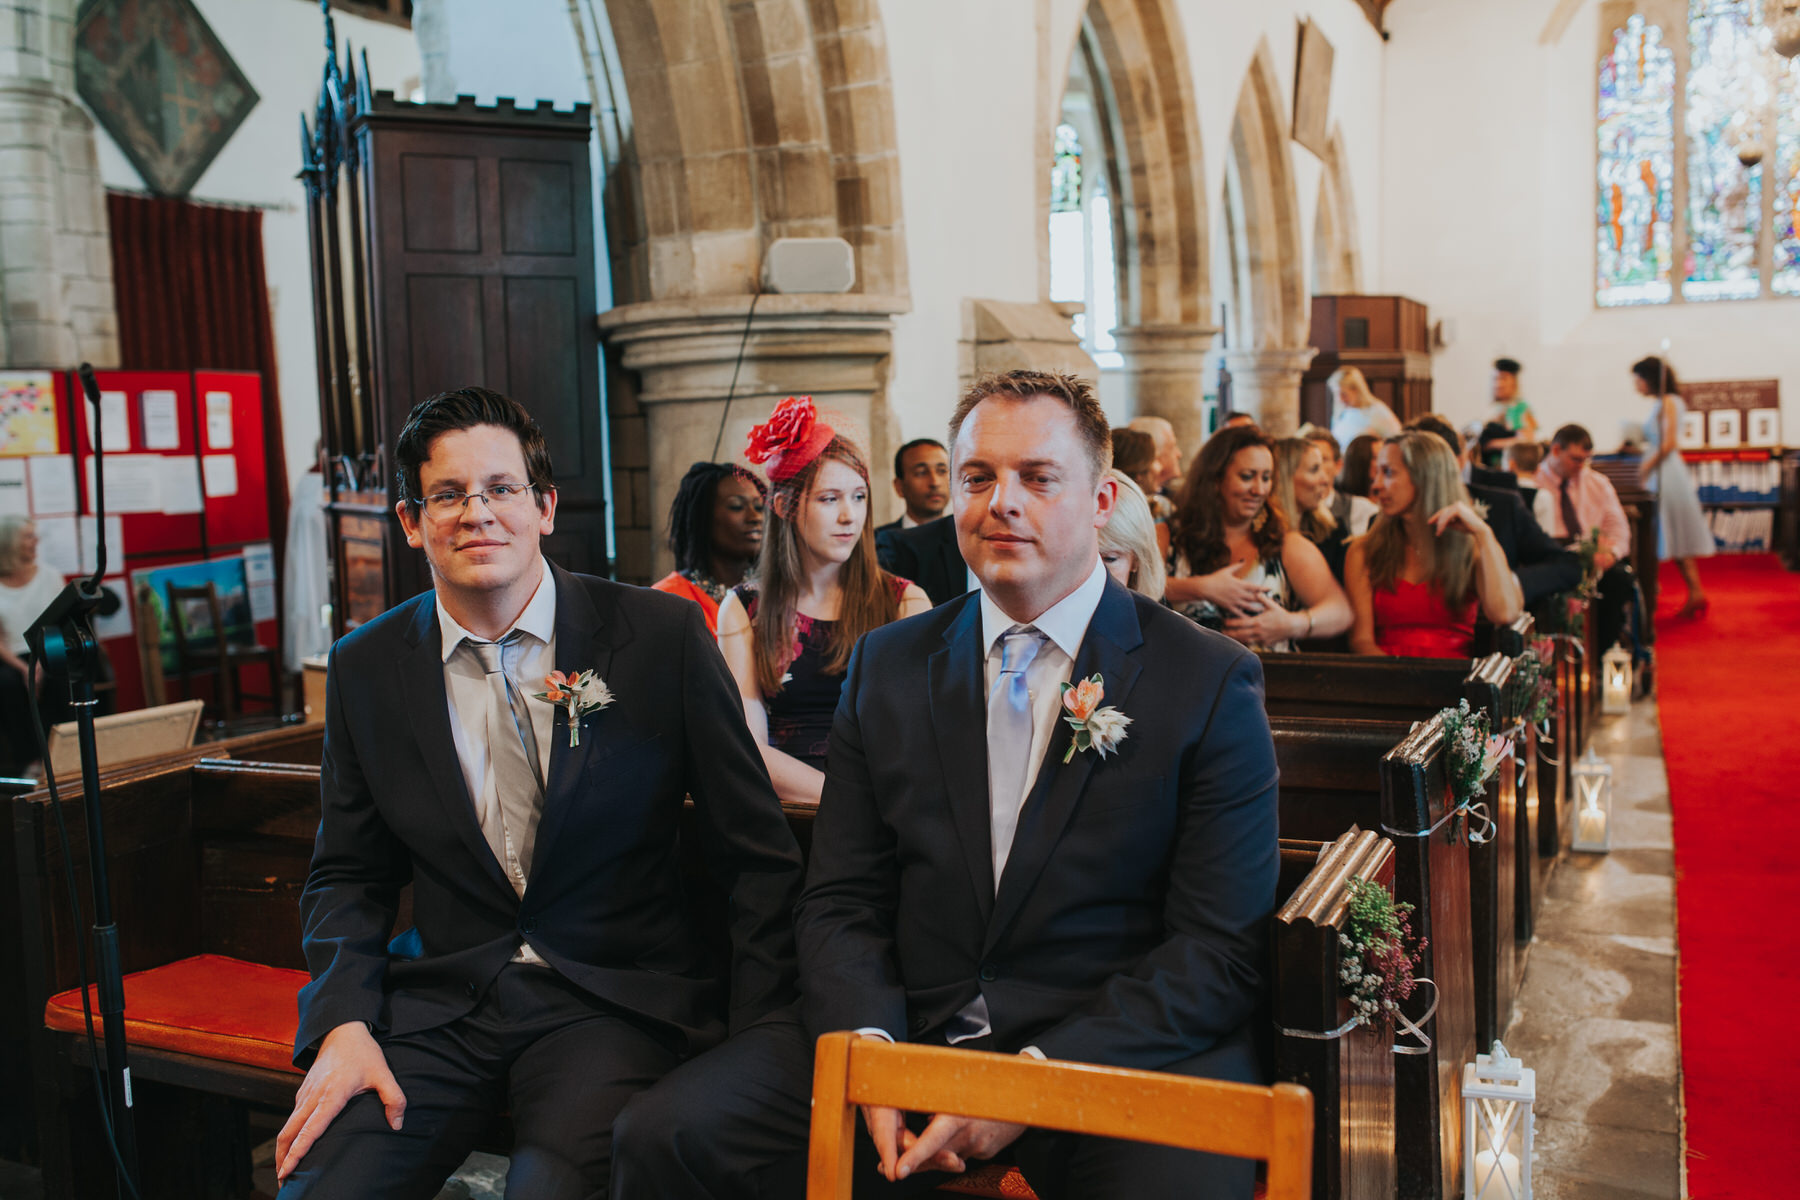 87 groom bestman waiting nervously church wedding.jpg